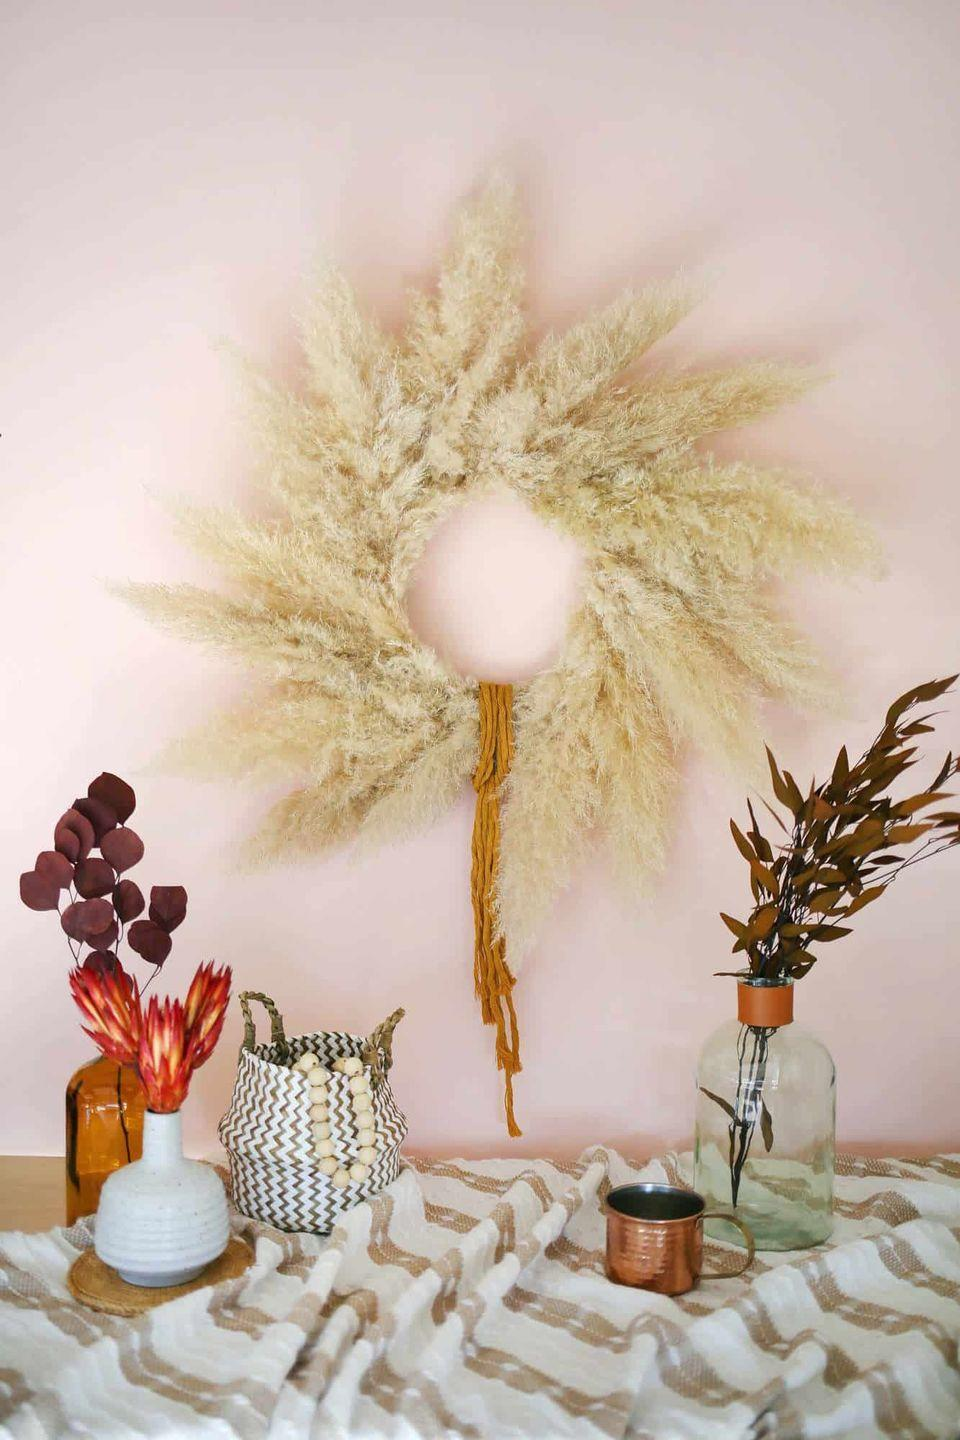 """<p>If you're more partial to wreaths, try this easy DIY. It's the perfect shade and texture for autumnal decor. </p><p><a class=""""link rapid-noclick-resp"""" href=""""https://abeautifulmess.com/pampas-grass-wreath-diy/"""" rel=""""nofollow noopener"""" target=""""_blank"""" data-ylk=""""slk:GET THE TUTORIAL"""">GET THE TUTORIAL</a></p>"""